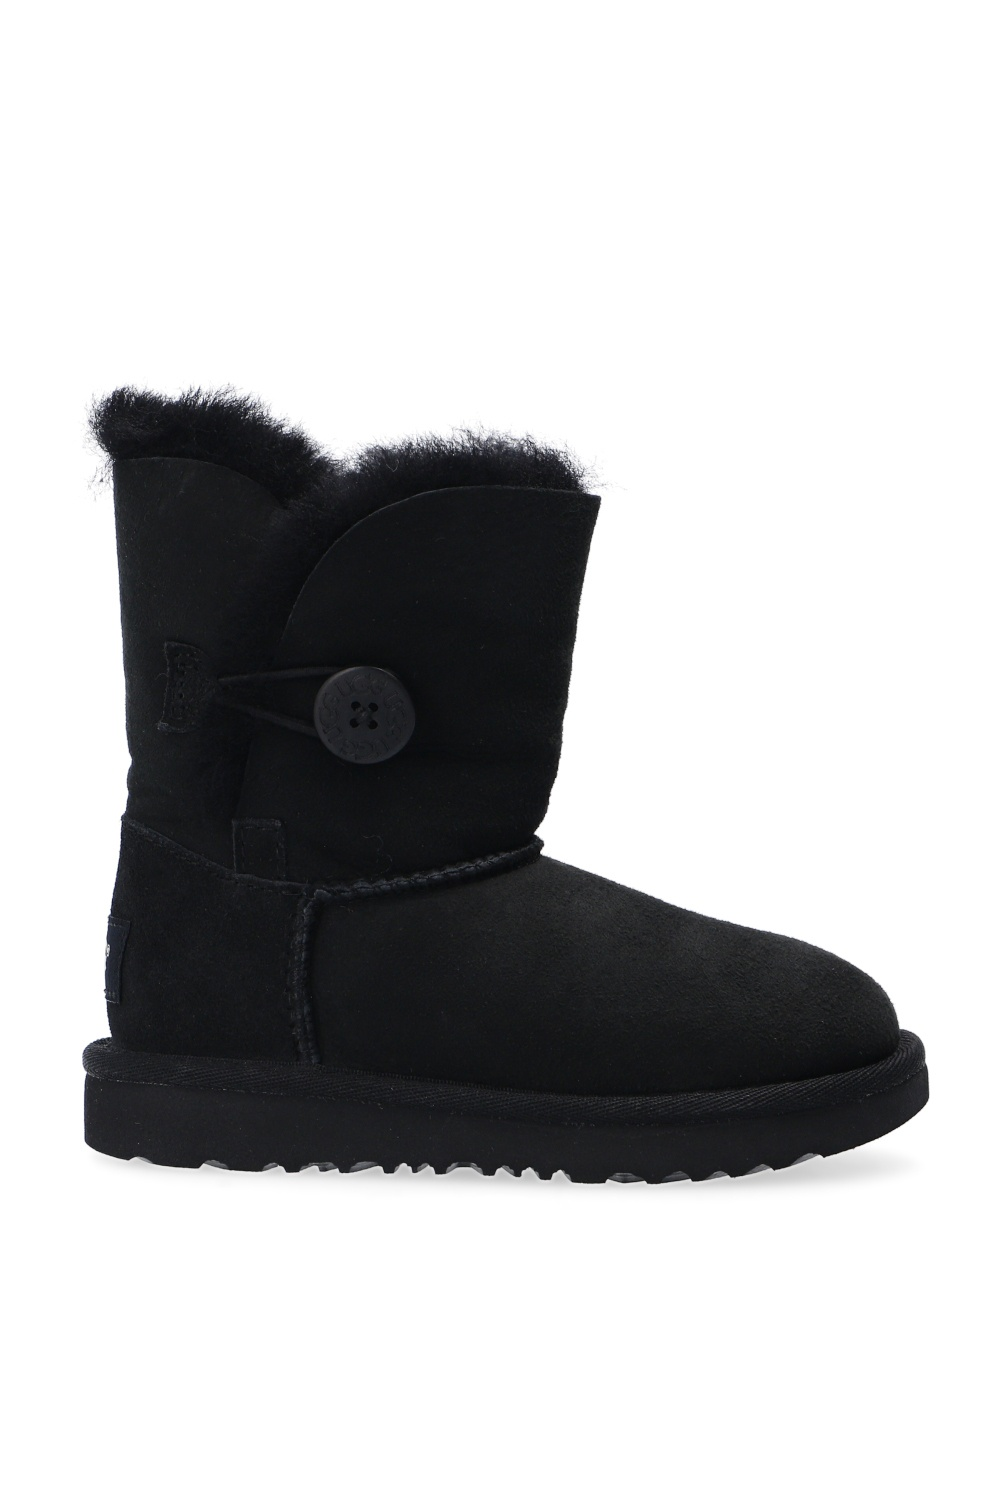 UGG Kids 'T Bailey Button II' snow boots